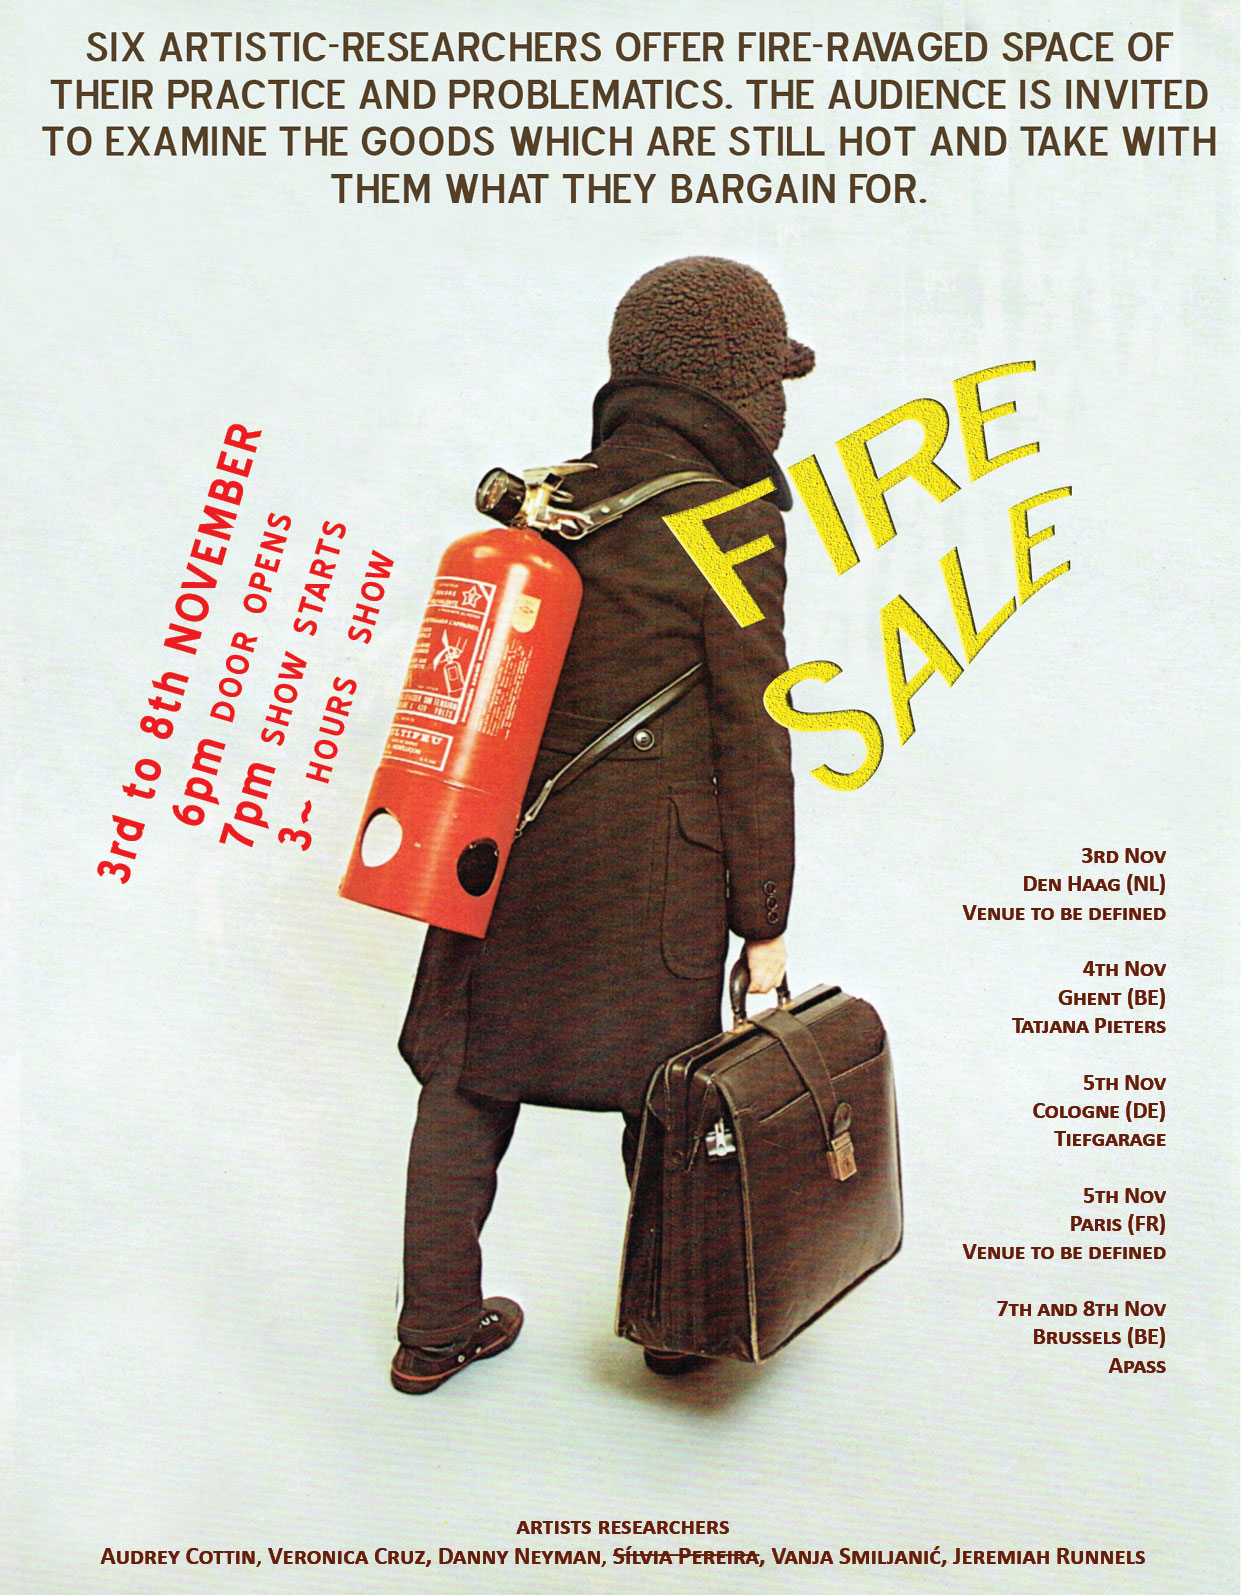 firesale5_for webx